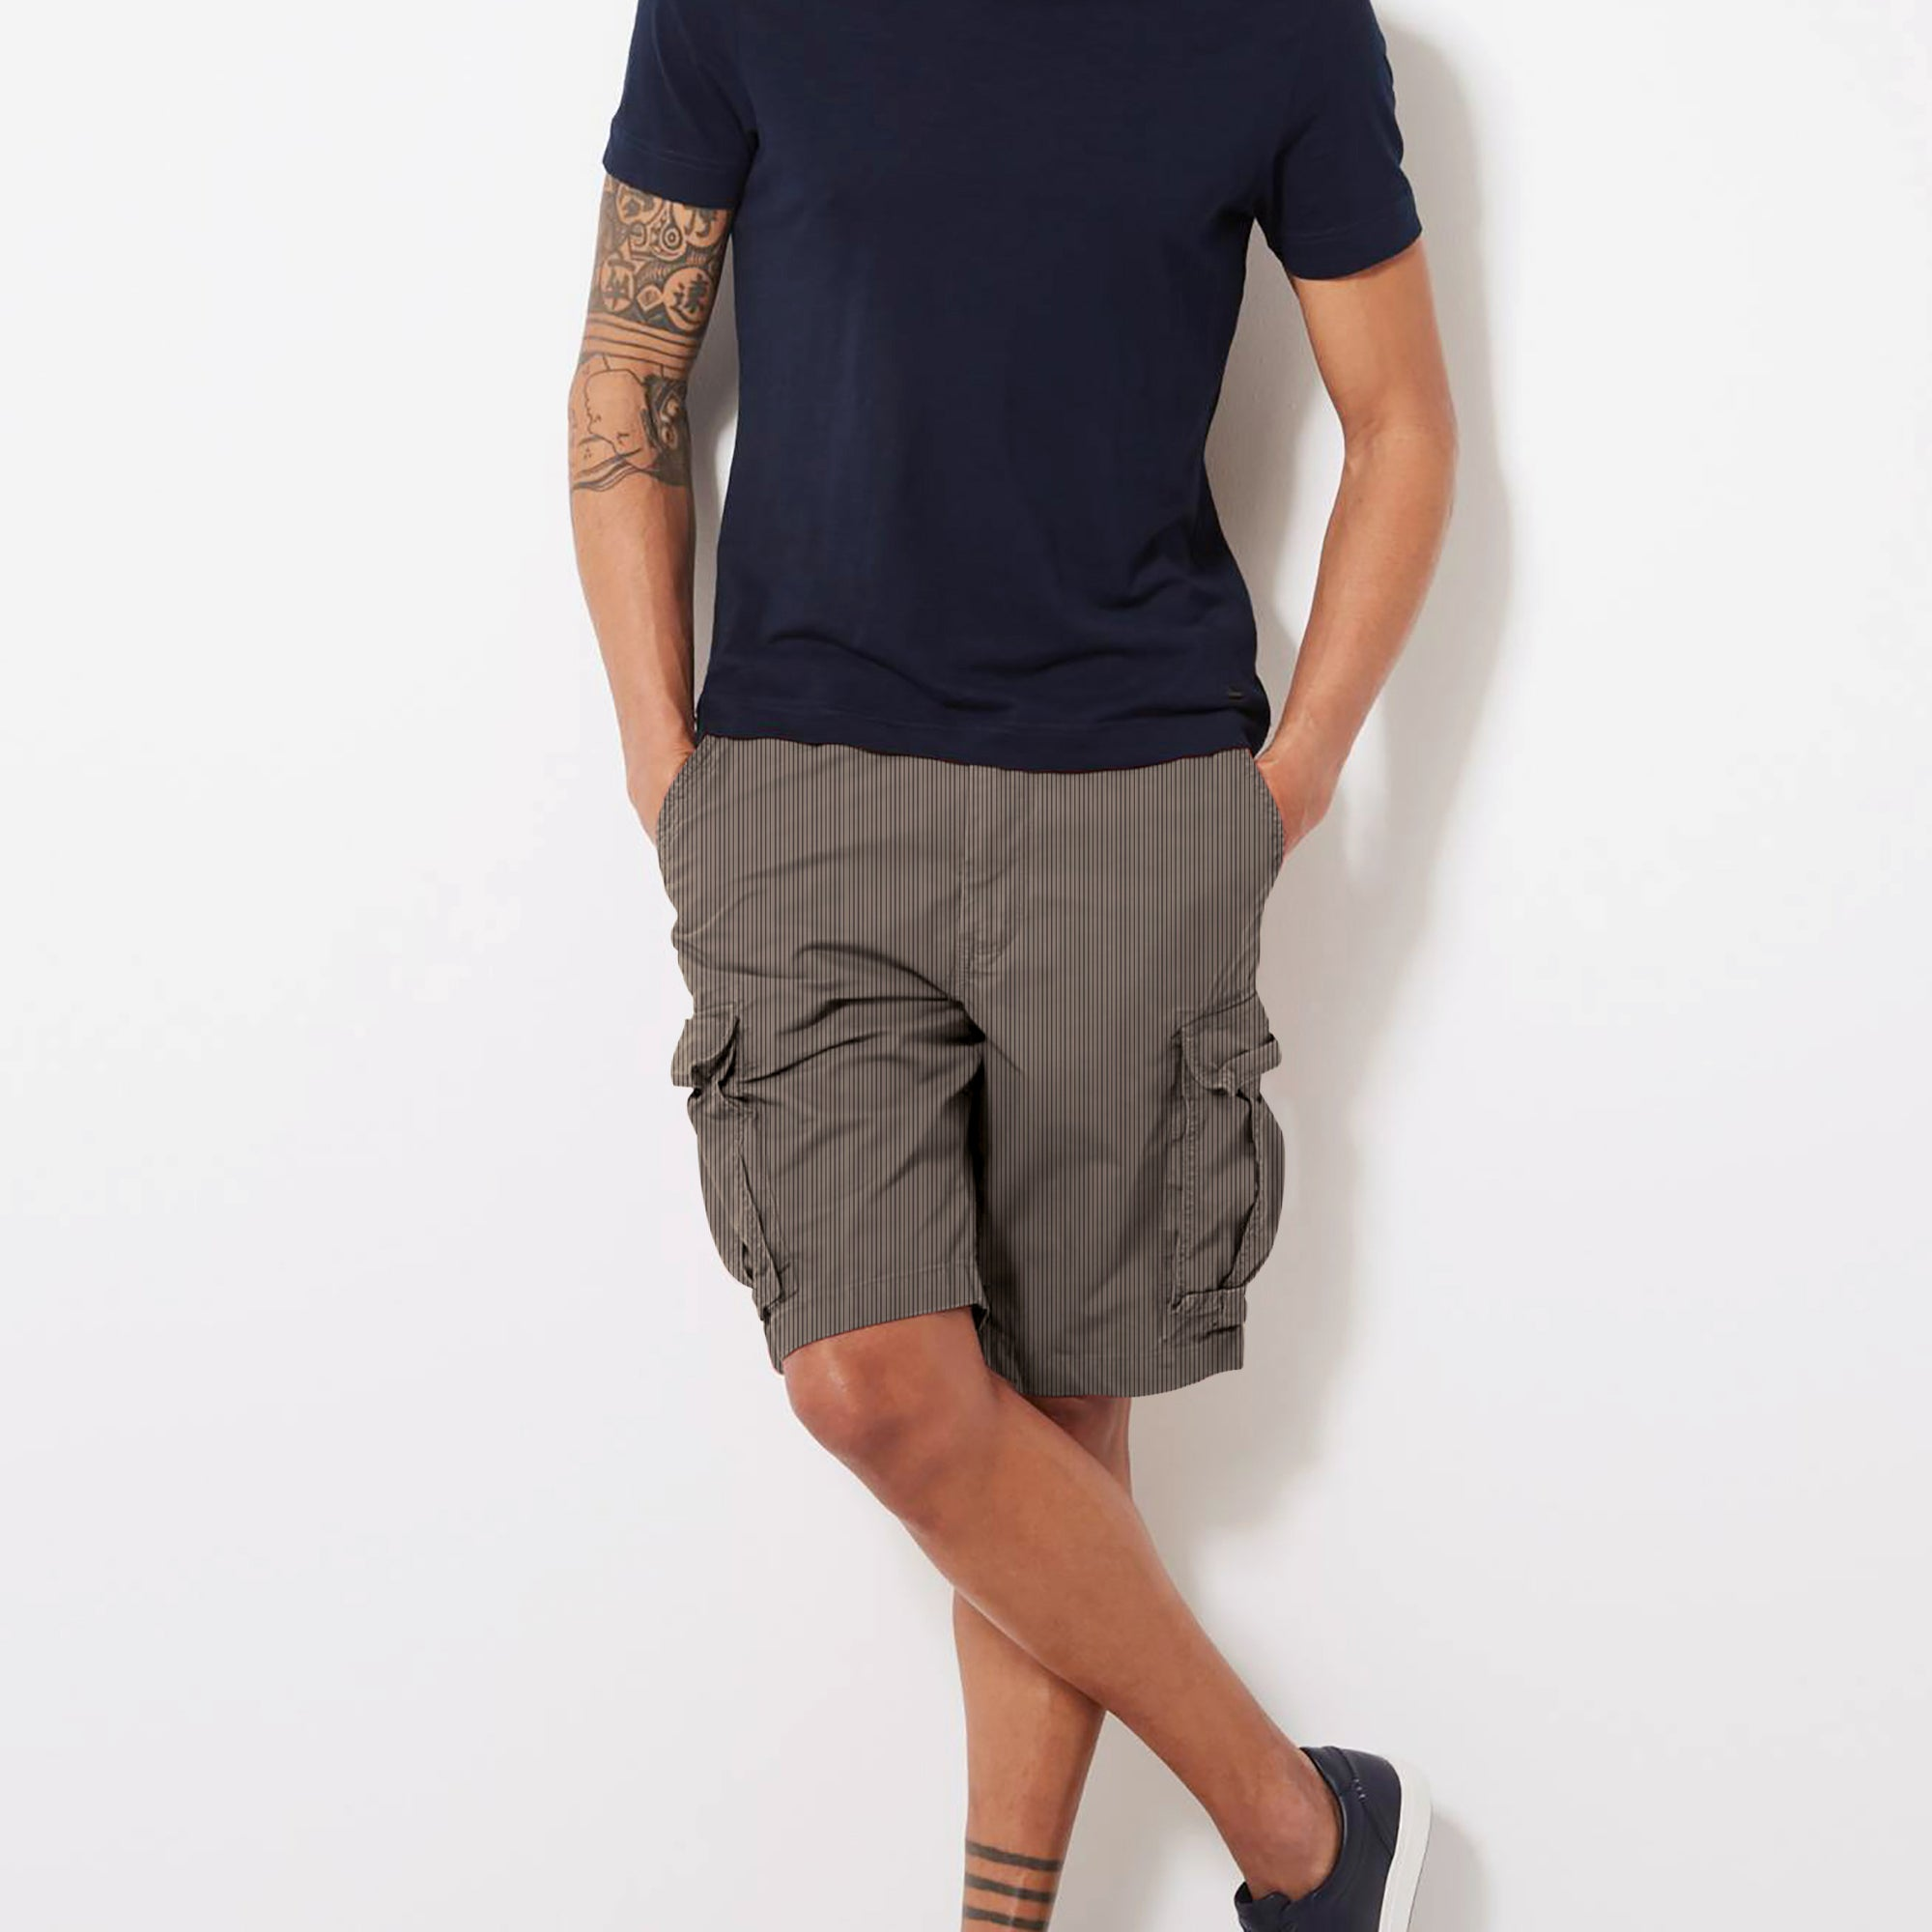 Denim Co. Cargo Cotton Short For Men-Dark Camel with Lining-BE8626